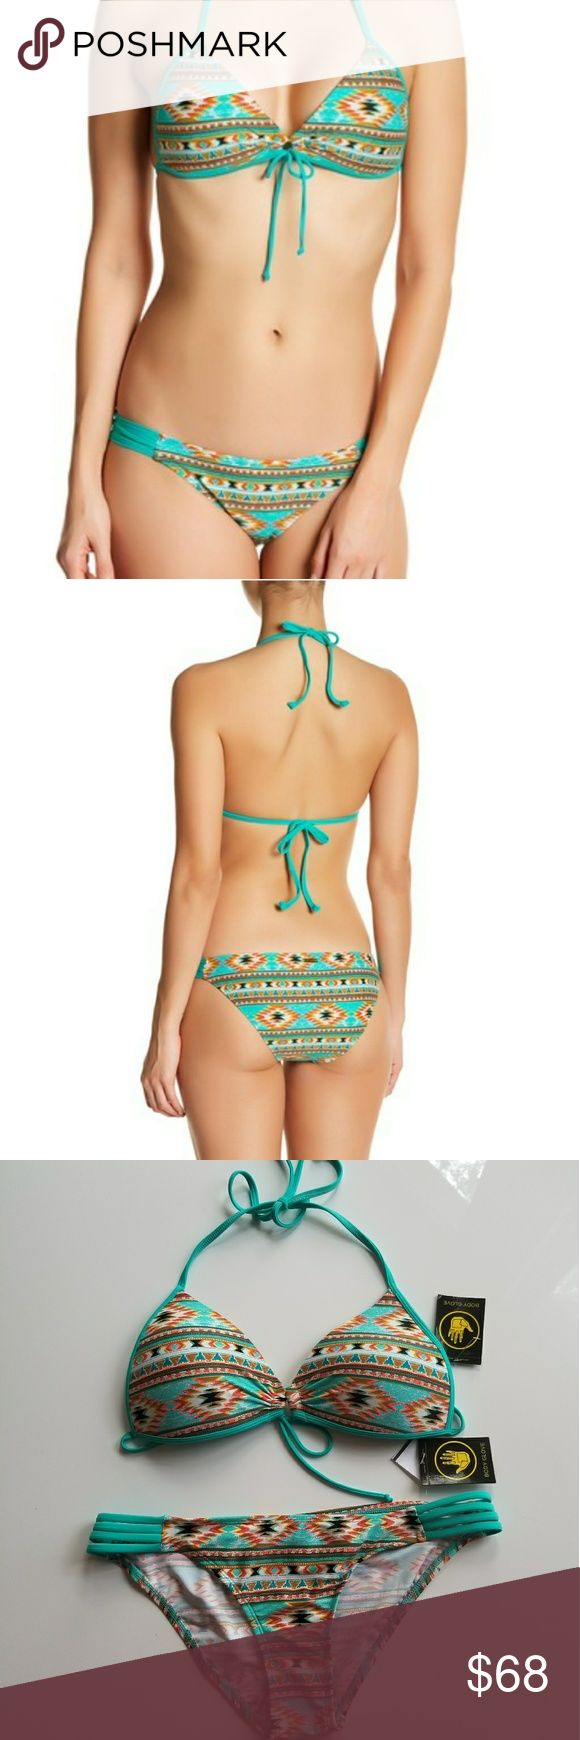 BODY GLOVE SET New Push Up & Bikini Tribal Aztec This is a brand new with tags Body Glove swim suit set. Includes top & bottom. Top is a tie halter triangle bikini top. It also ties in the back so you have optimum adjustability. The top is a light push up - the cups are molded and the top has heart shaped padding inside the cups. Both the top & bottom are size Medium and they fit true to size. The bottoms have the hygienic  liner in tact. Color is turquoise with a tribal/aztec/geometric…